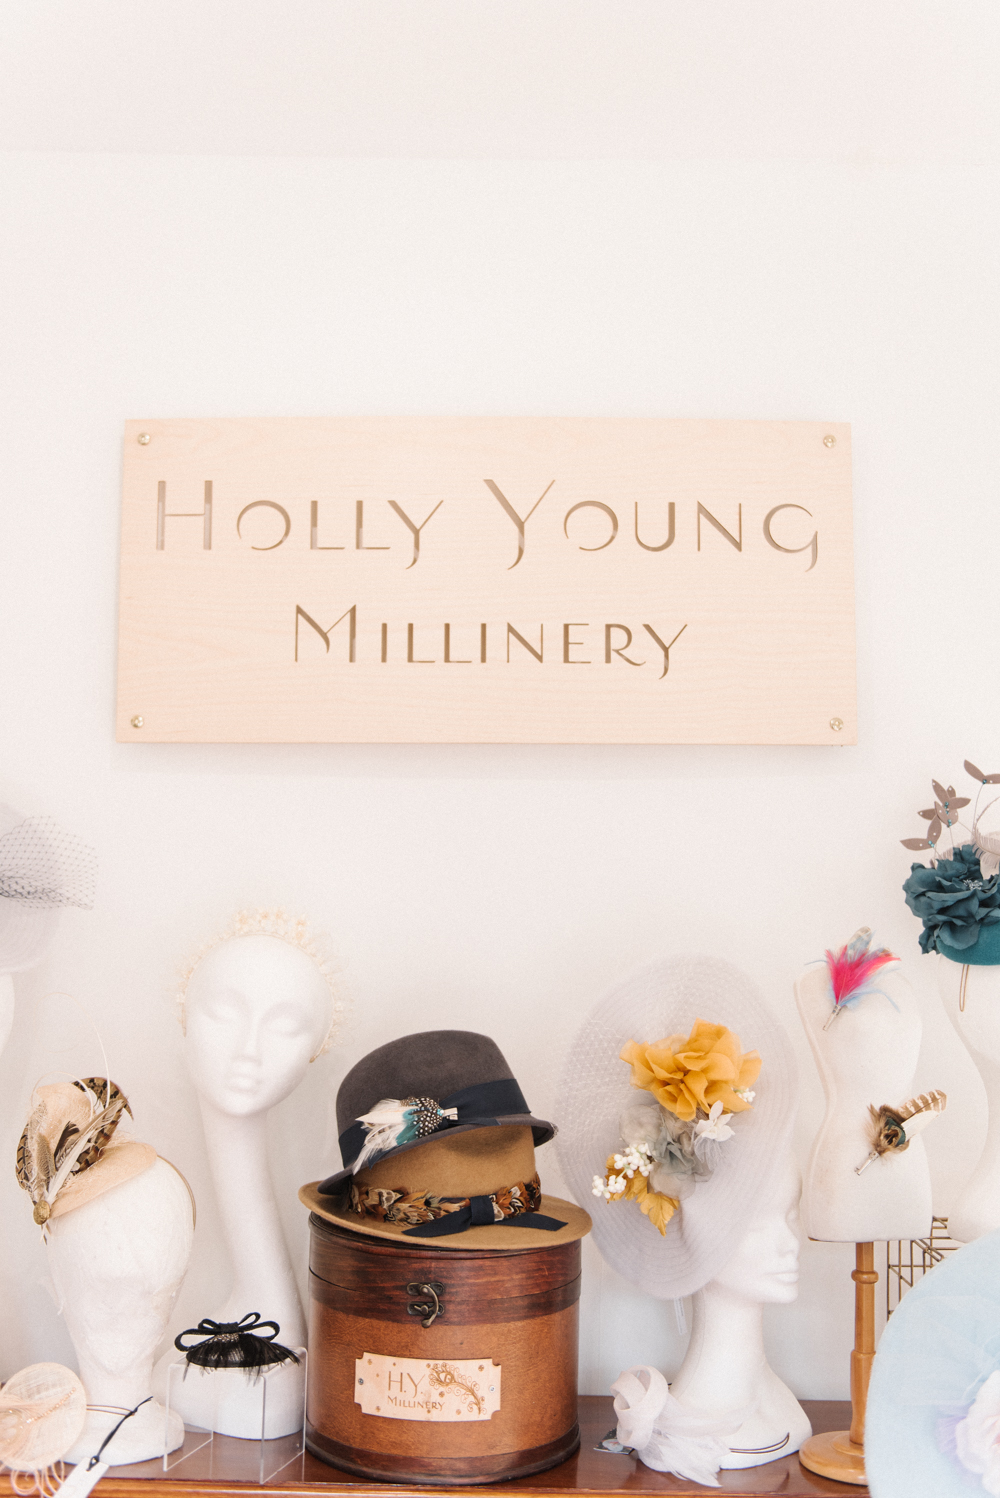 How To Feel Confident When Having Business Headshots Taken // www.oliviabossert.com // #business #businesstips #headshots #cornwall #cornwallphotographer #freelance #headshotphotography #feelingconfident holly young millinery